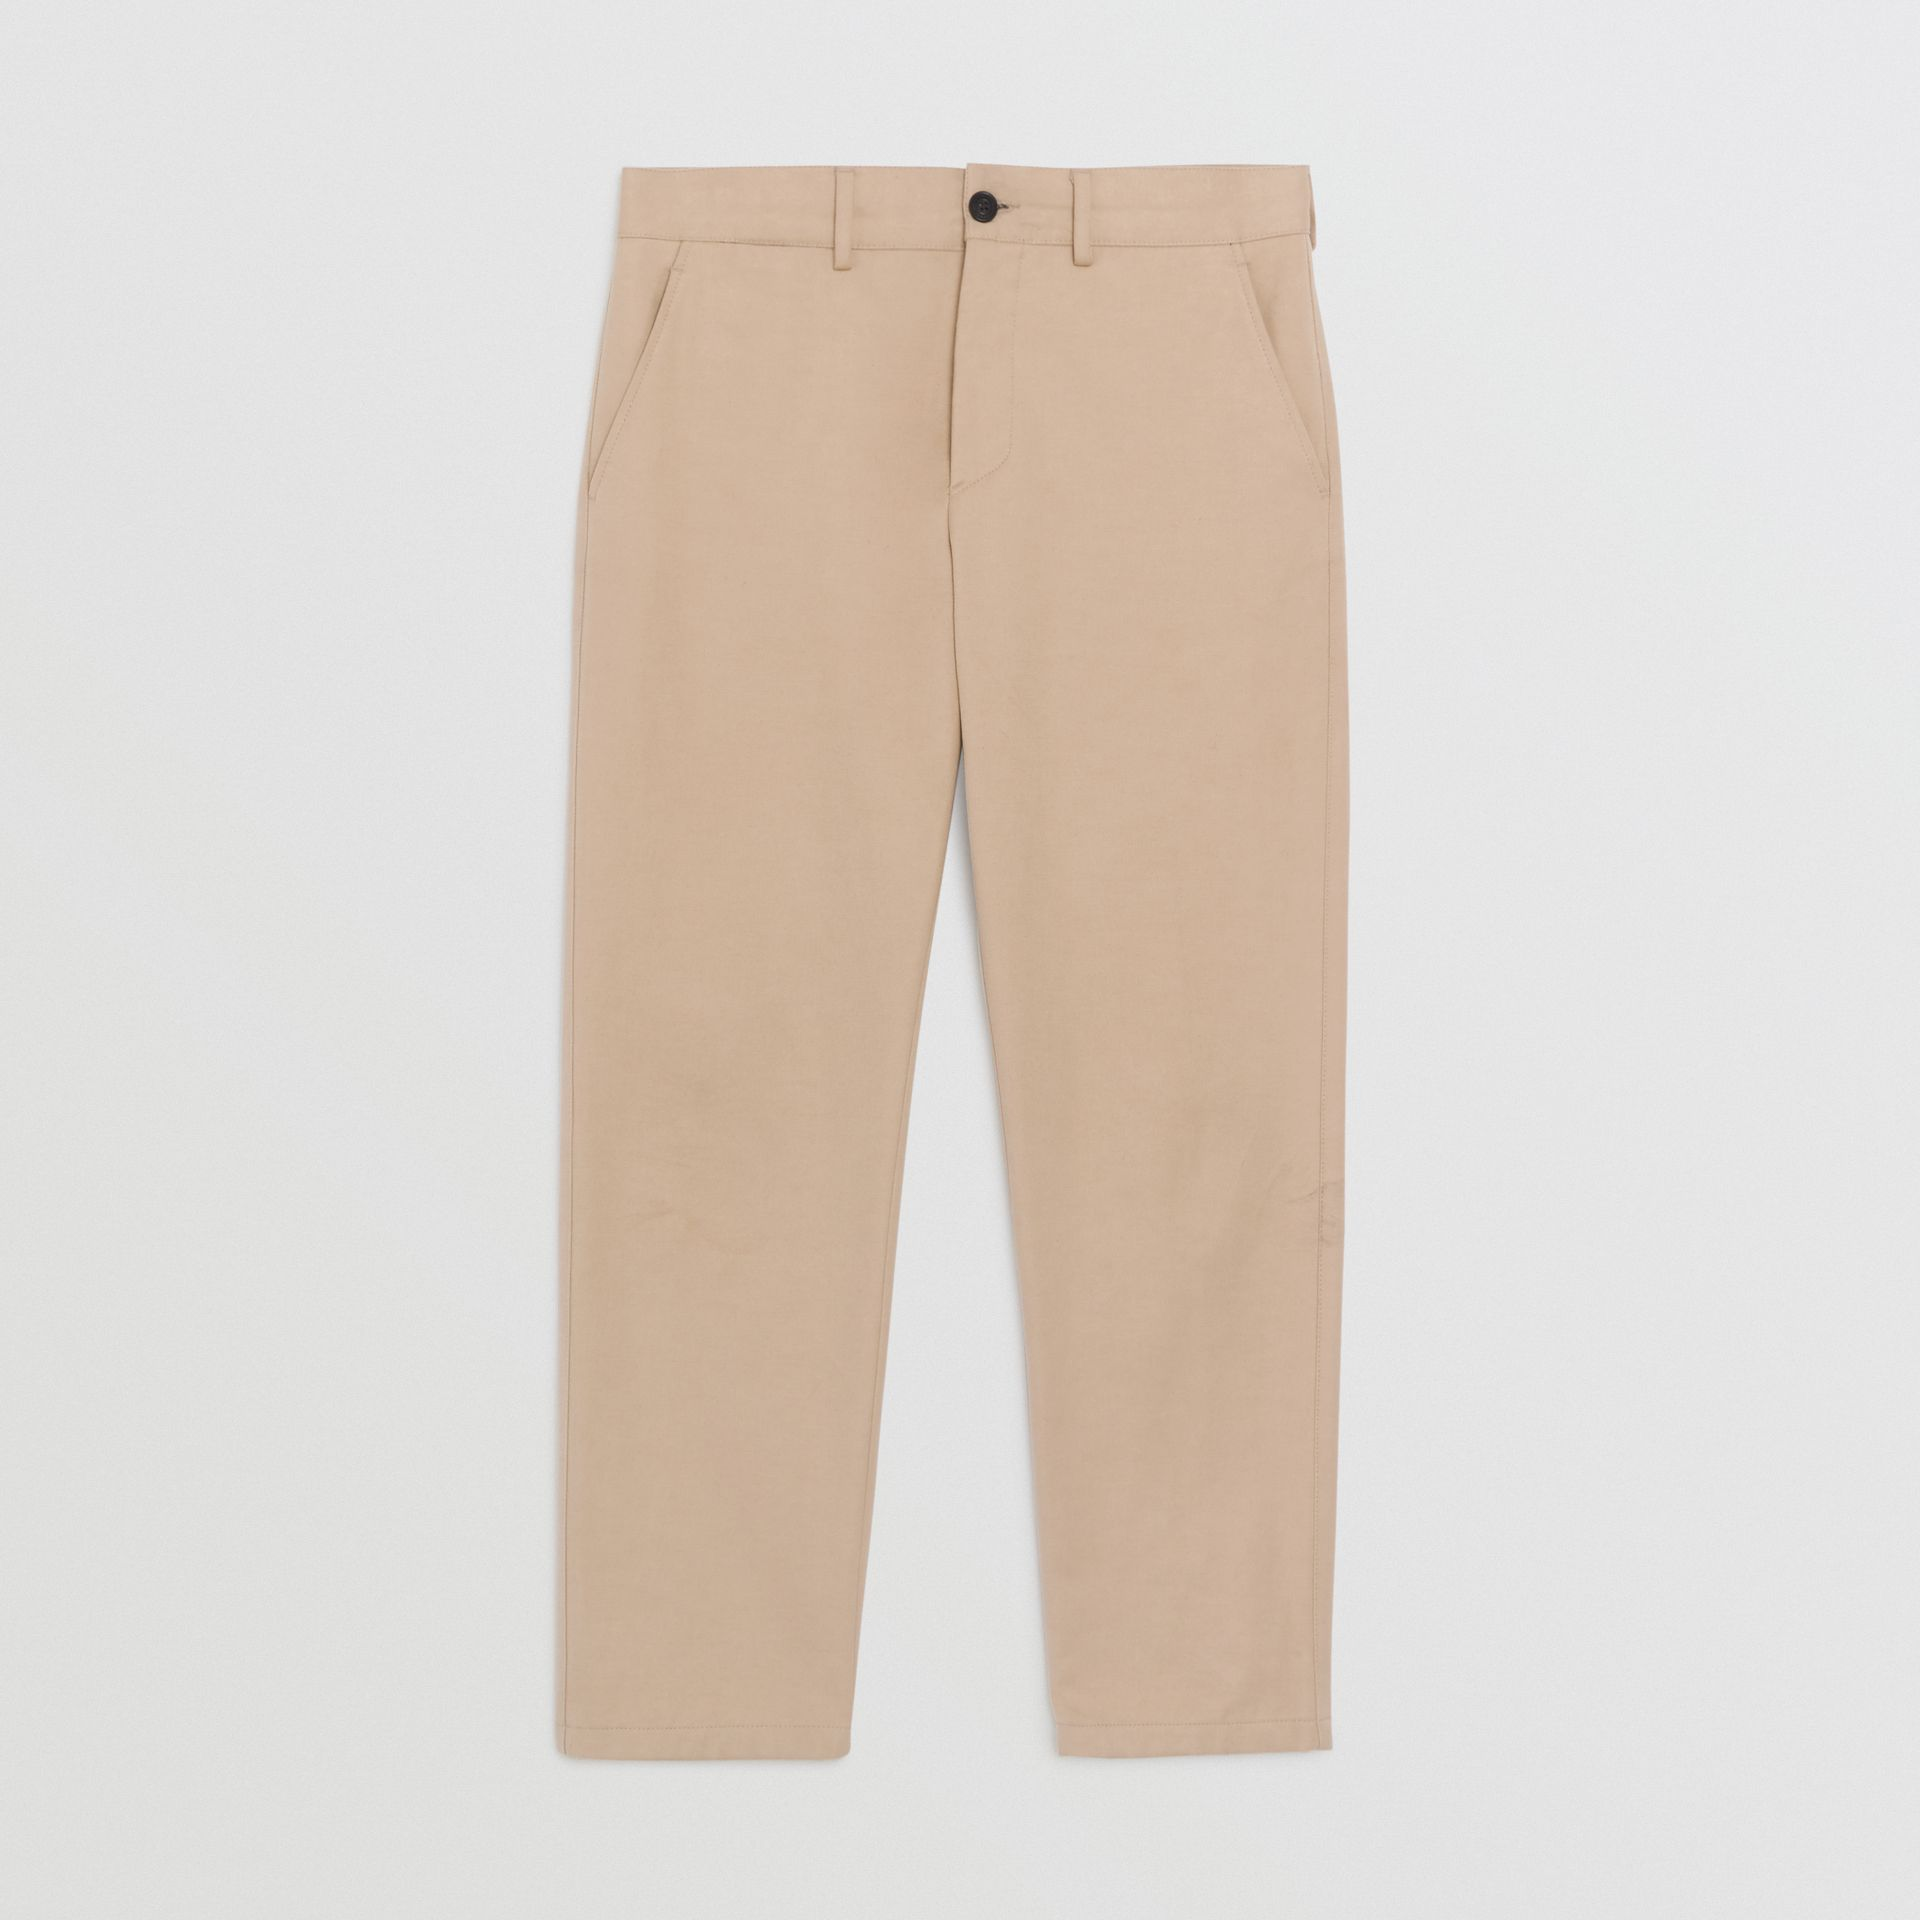 Slim Fit Cotton Blend Chinos in Stone - Men | Burberry Australia - gallery image 3